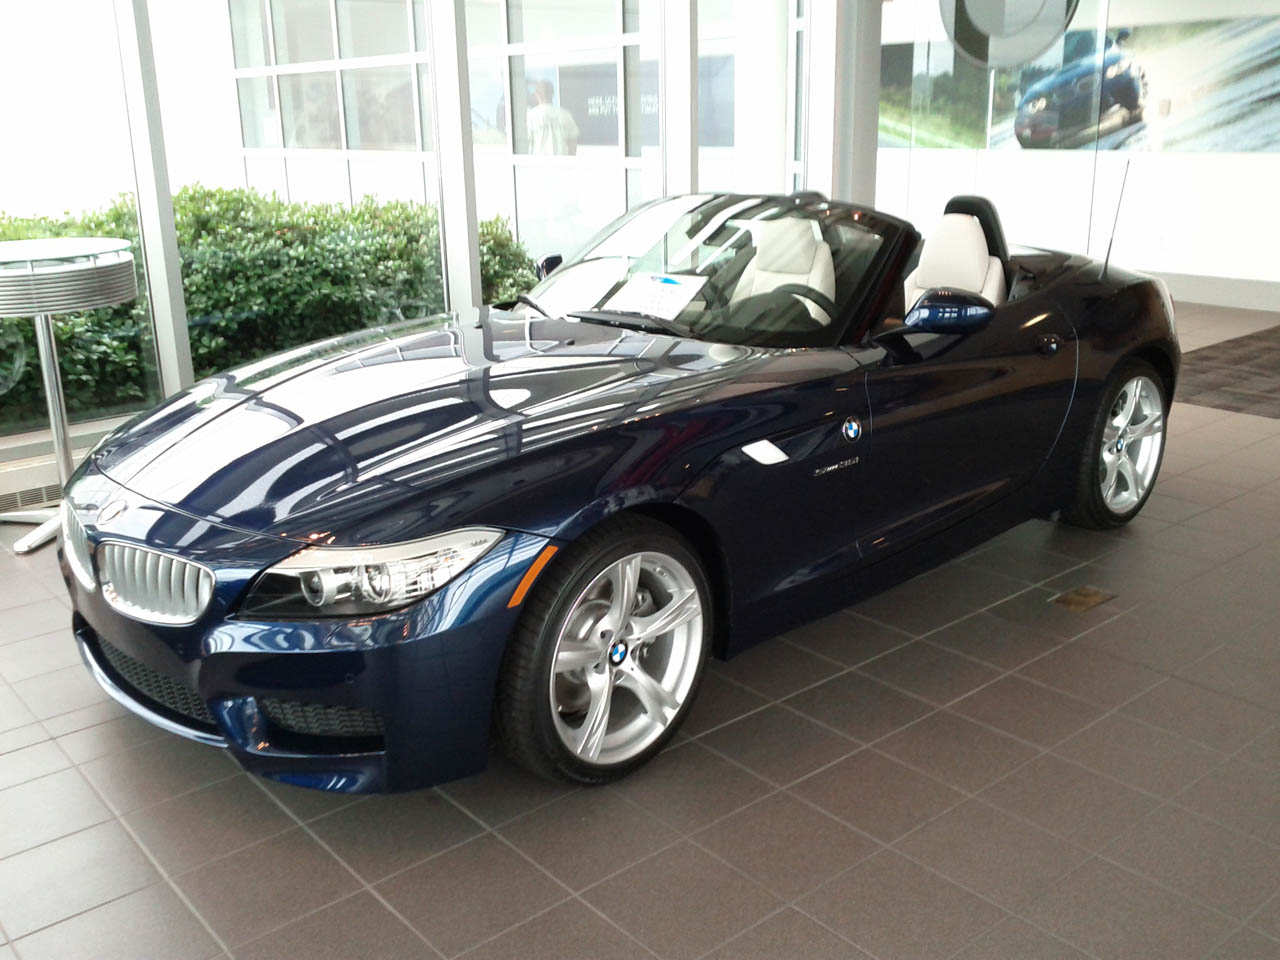 2011 Bmw Z4 Sdrive 35i 1 4 Mile Trap Speeds 0 60